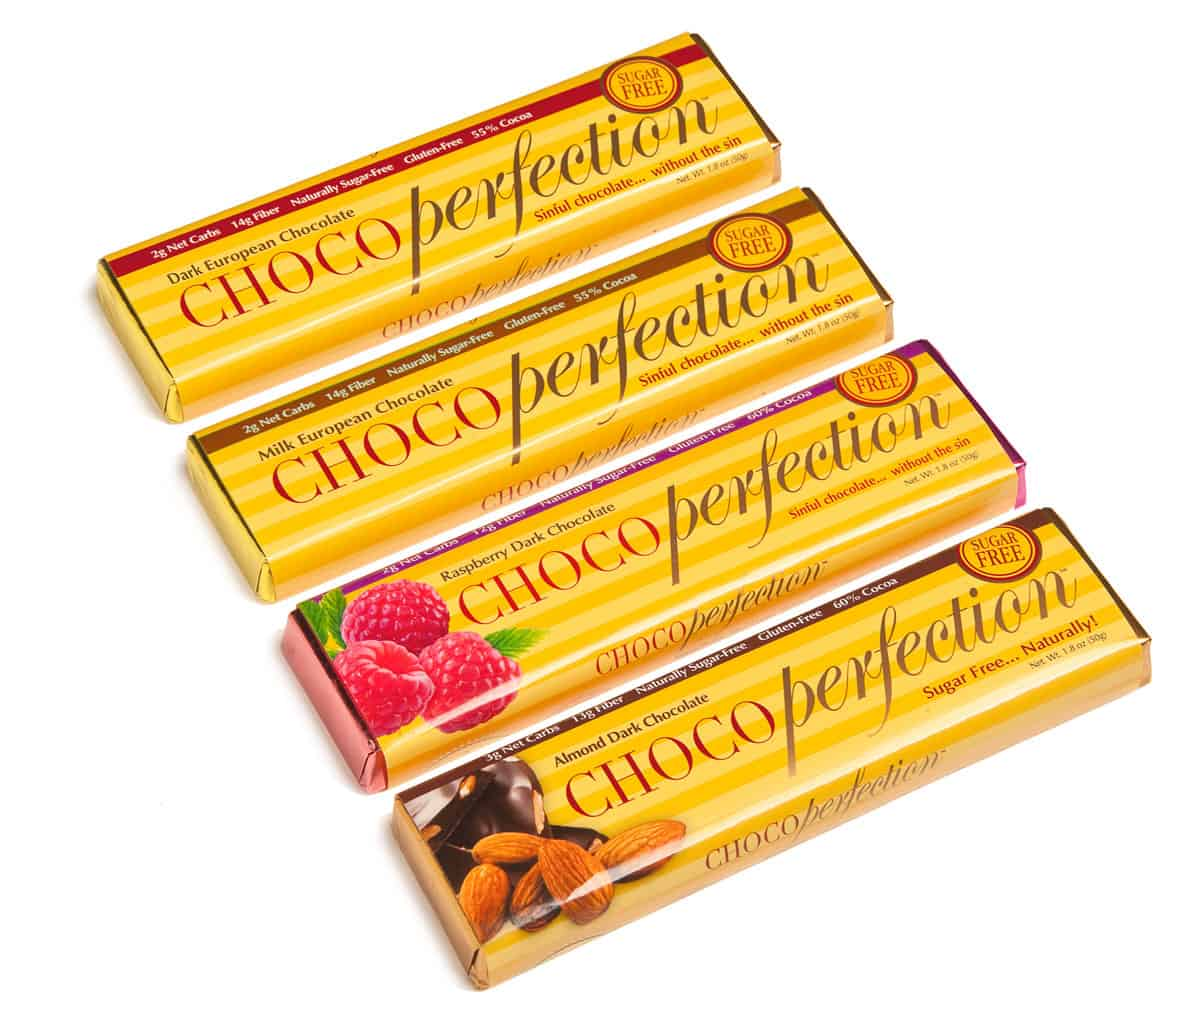 ChocoPerfection Four Flavors Chocolate Bars